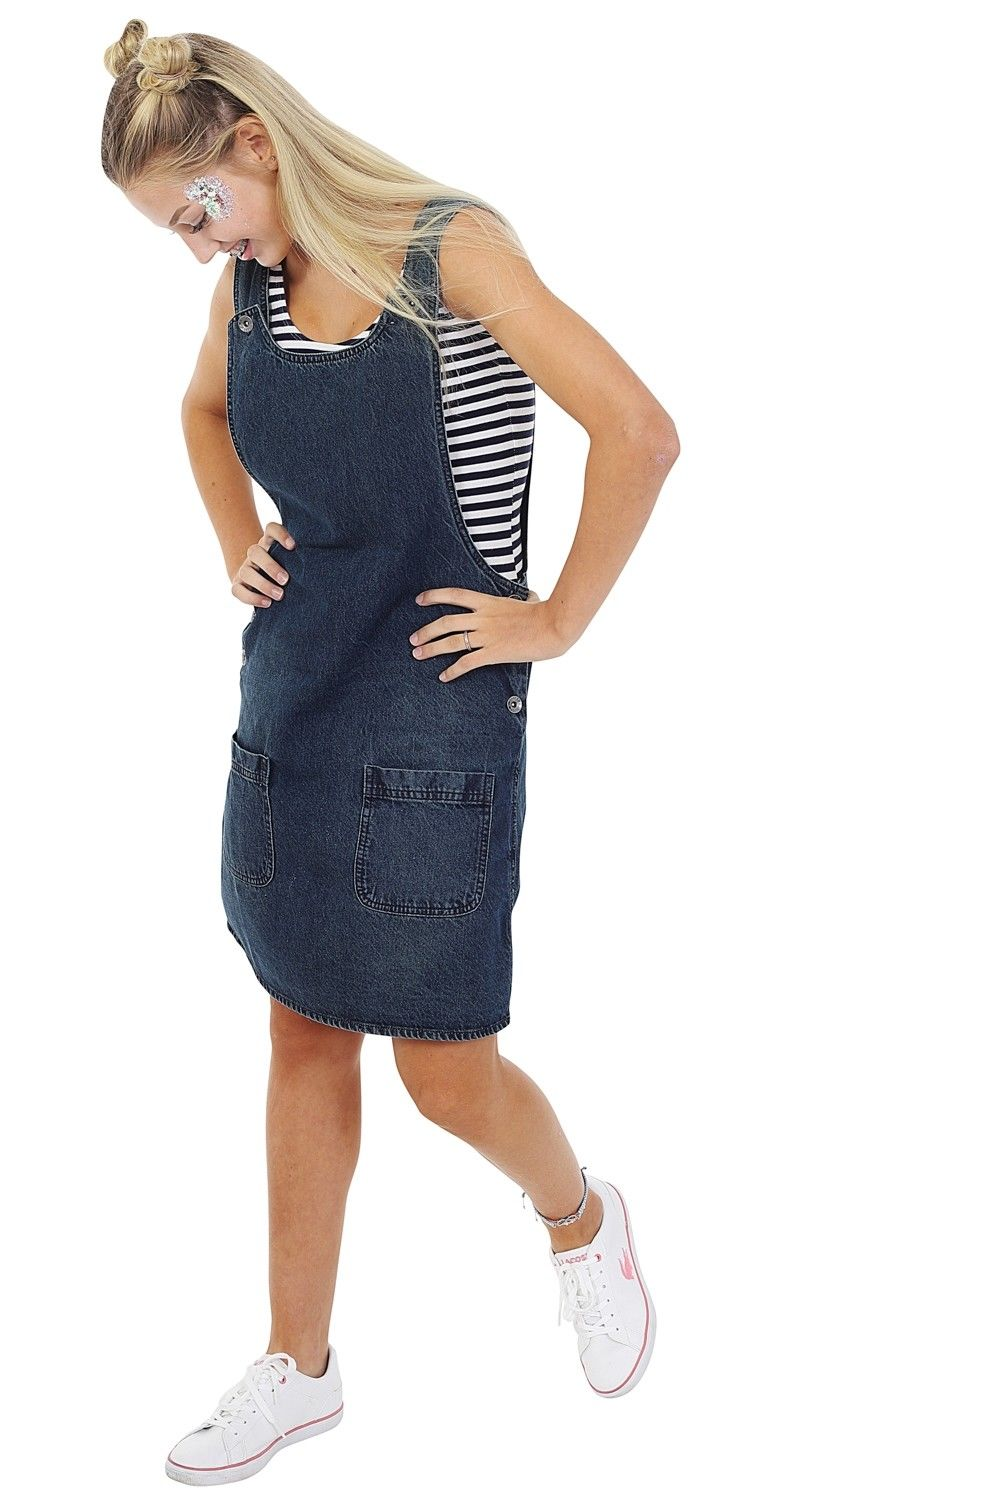 Angled front-side walking pose wearing 'Renee' style, short denim vintage wash pinafore dress with adjustable shoulder.